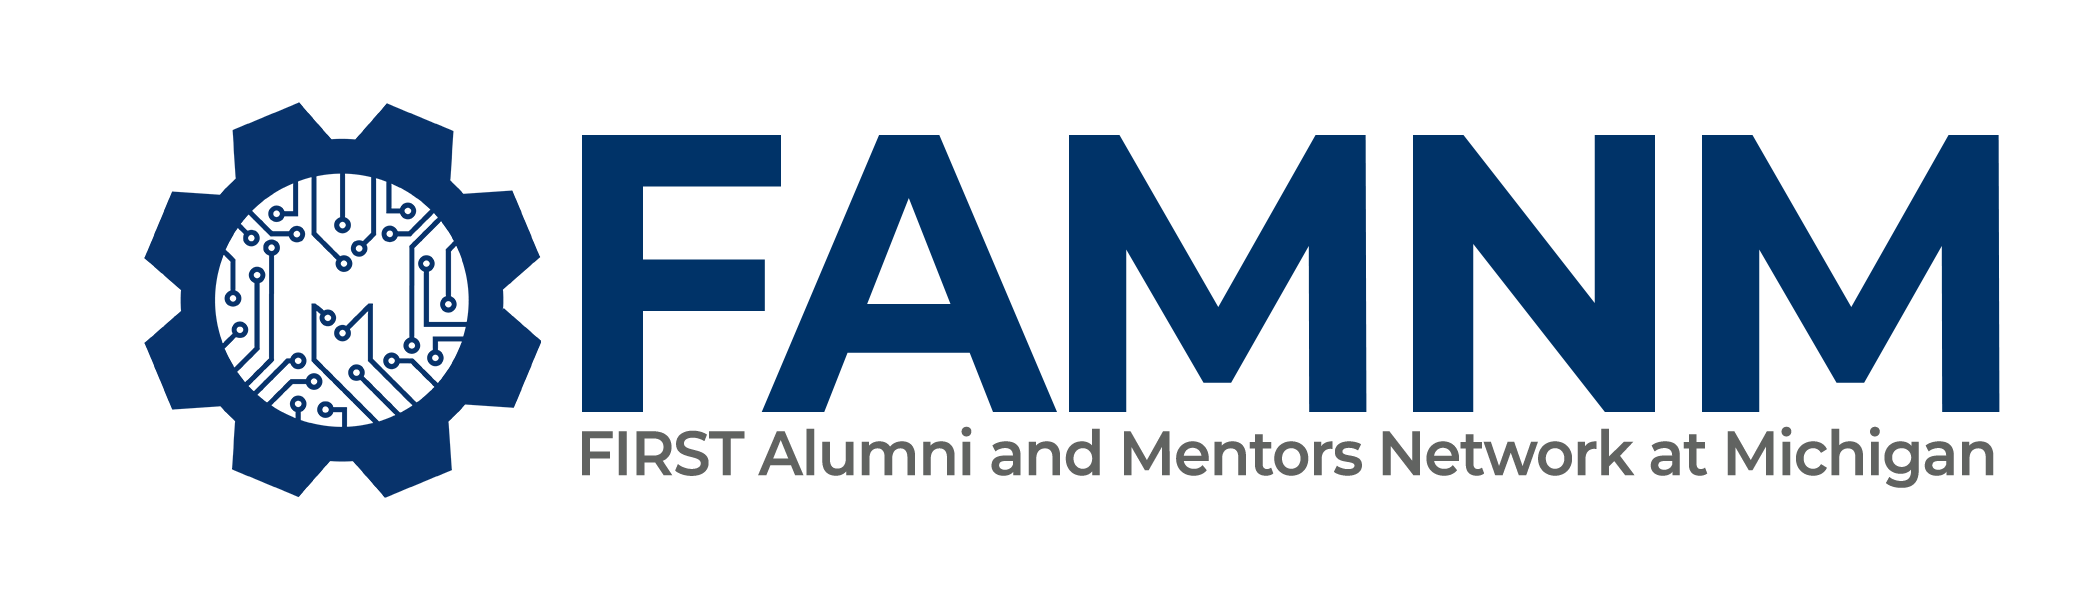 FIRST Alumni and Mentors Network at Michigan